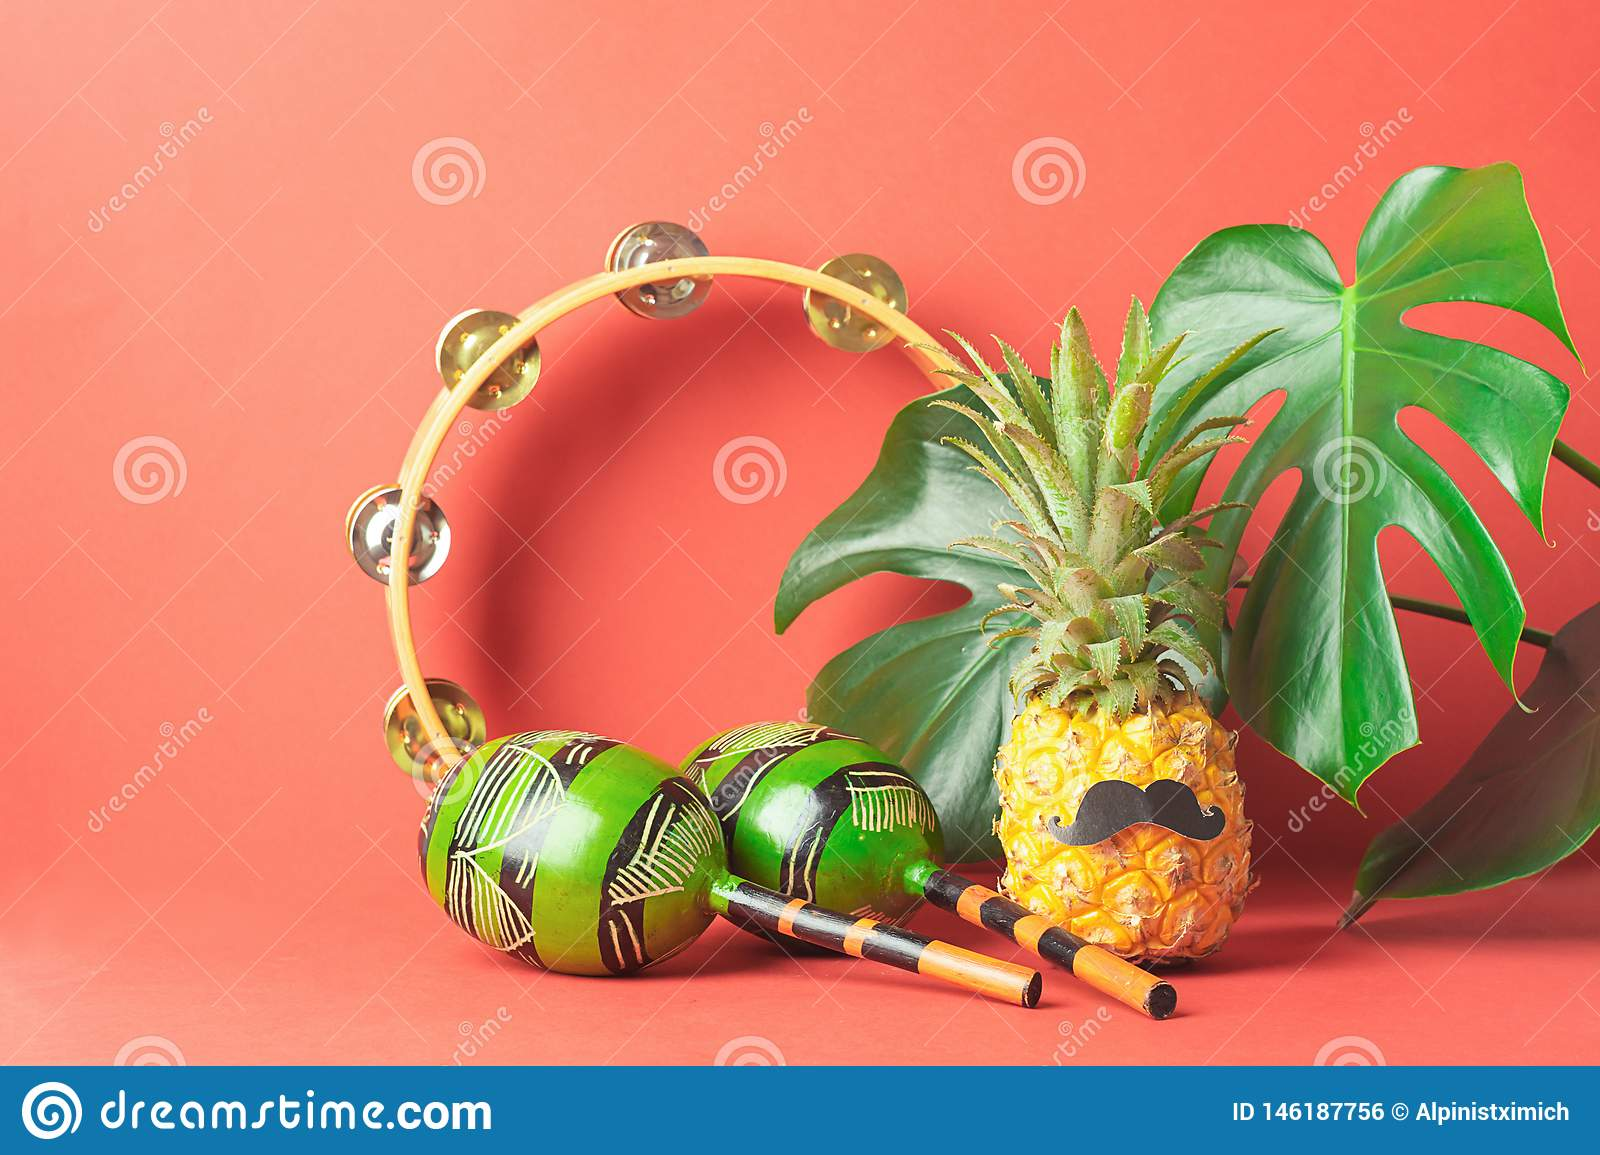 Ripe pineapple with a black mustache maracas tambourine large leaves of monstera on a red bright background.